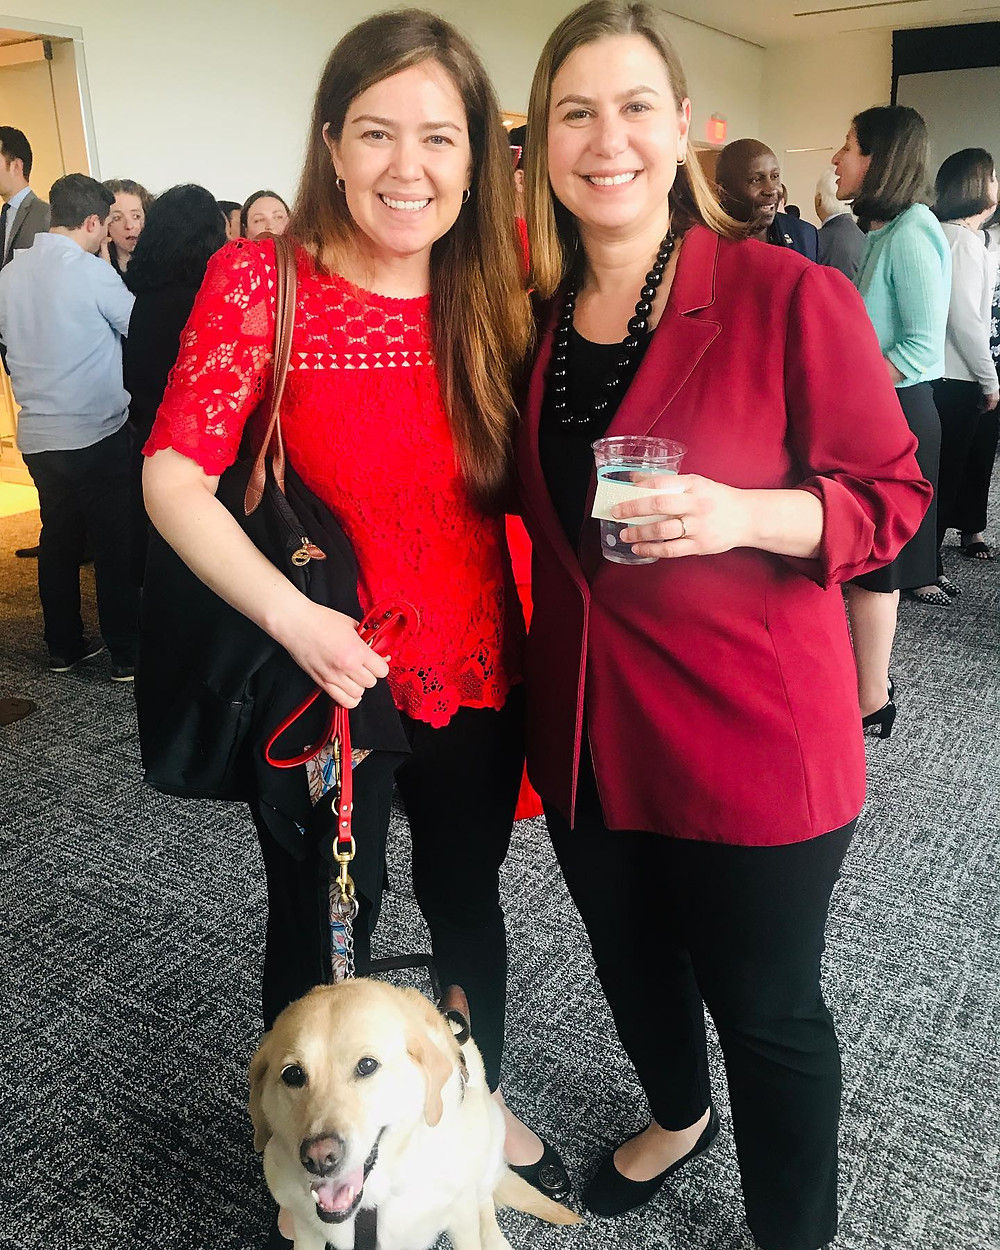 Kristin wears a red lace top and black pants and stands next Congresswoman Slotkin who is wearing a red blazer and black pants. They are both smiling and the Congresswoman is holding a glass in her hand. Kristin is holding Zoe on a red leash and Zoe is sitting on the floor in front of them with a big smile on her face.